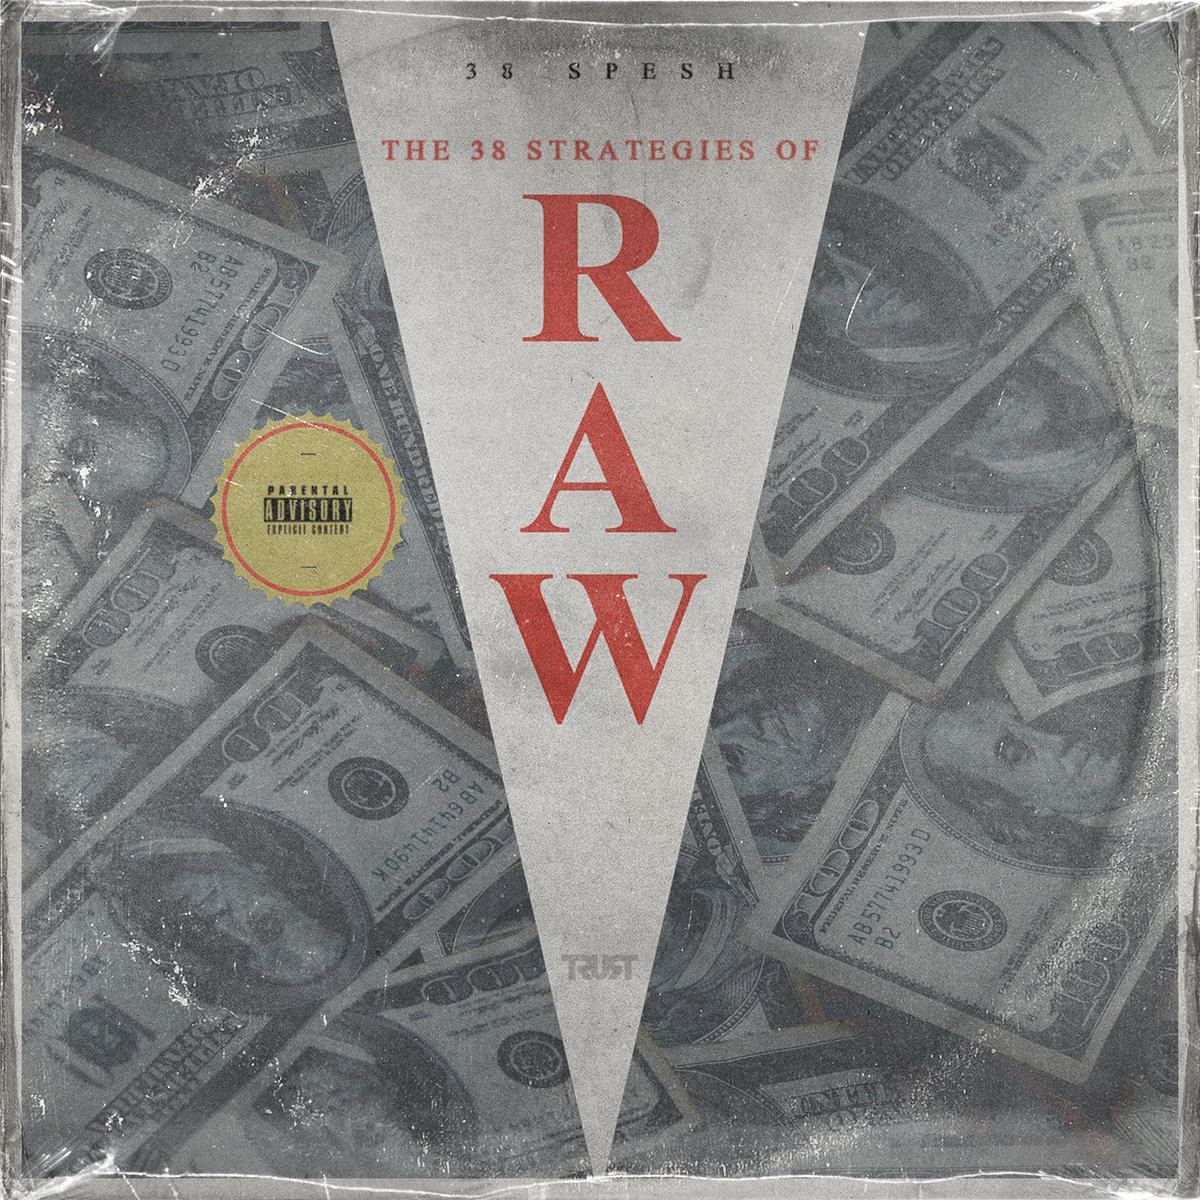 Image result for 38 spesh 38 strategies of raw